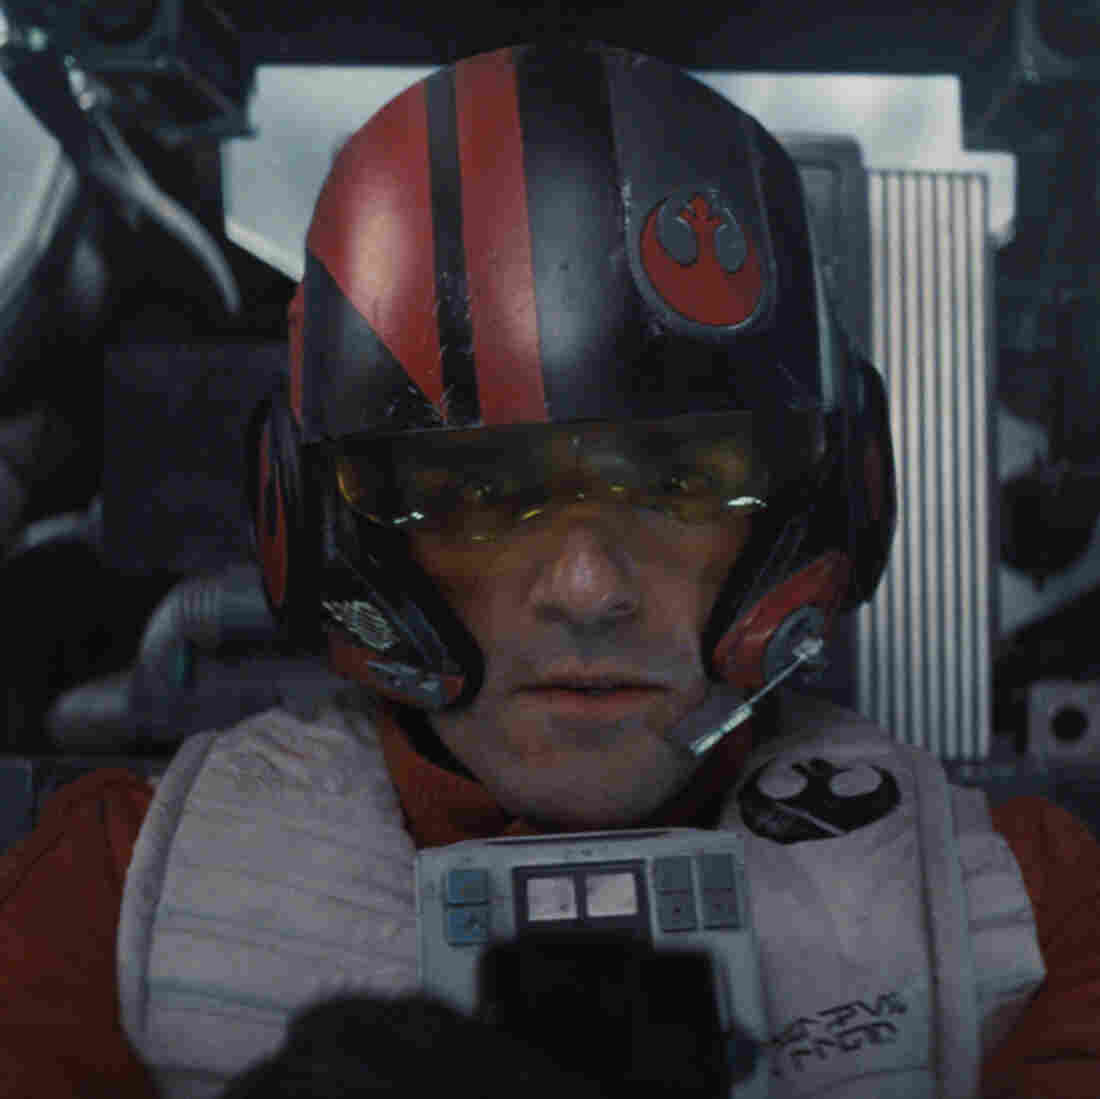 Poe Dameron (Oscar Isaac) in a scene from Star Wars: The Force Awakens.